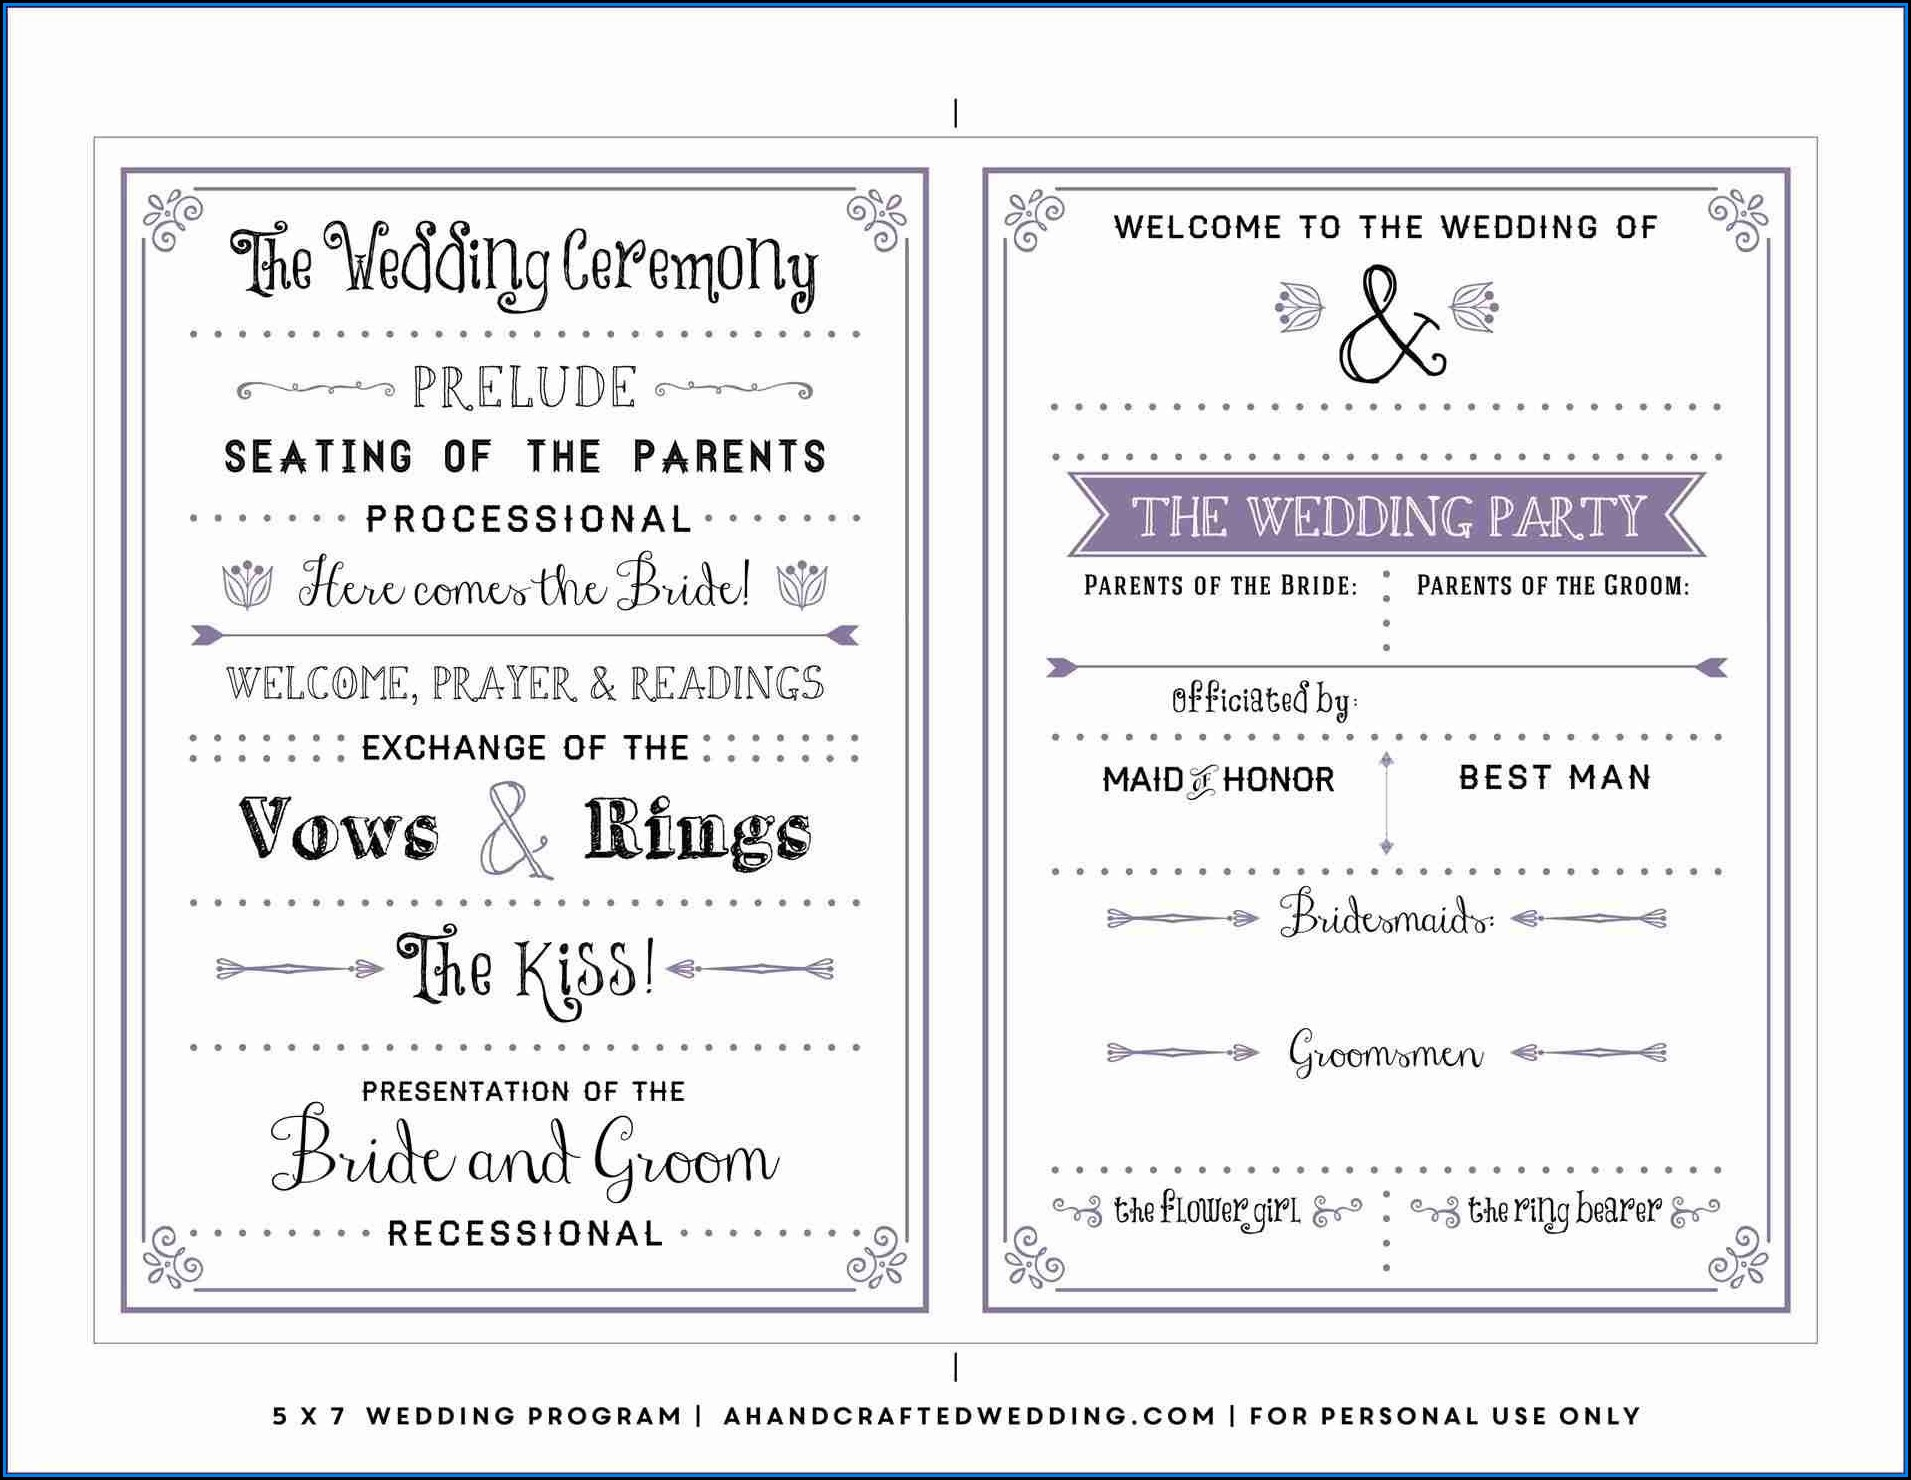 Free Downloadable Wedding Program Templates